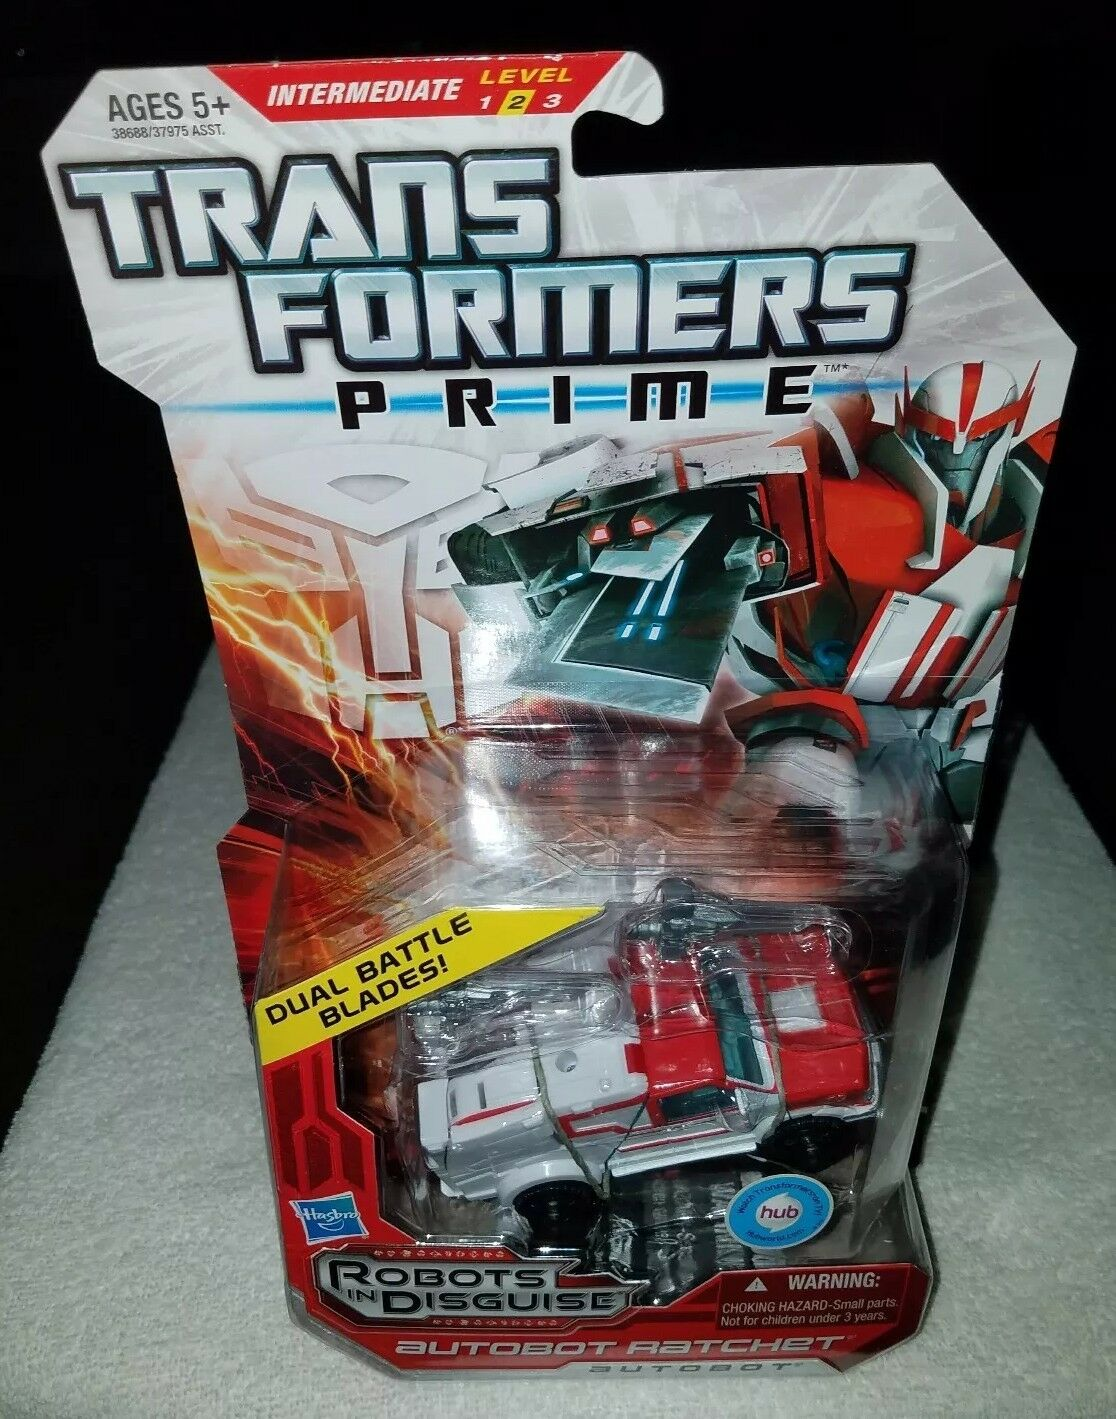 Hasbro Transformers Prime Robots In Disguise Autobot Ratchet Deluxe Class Nuovo